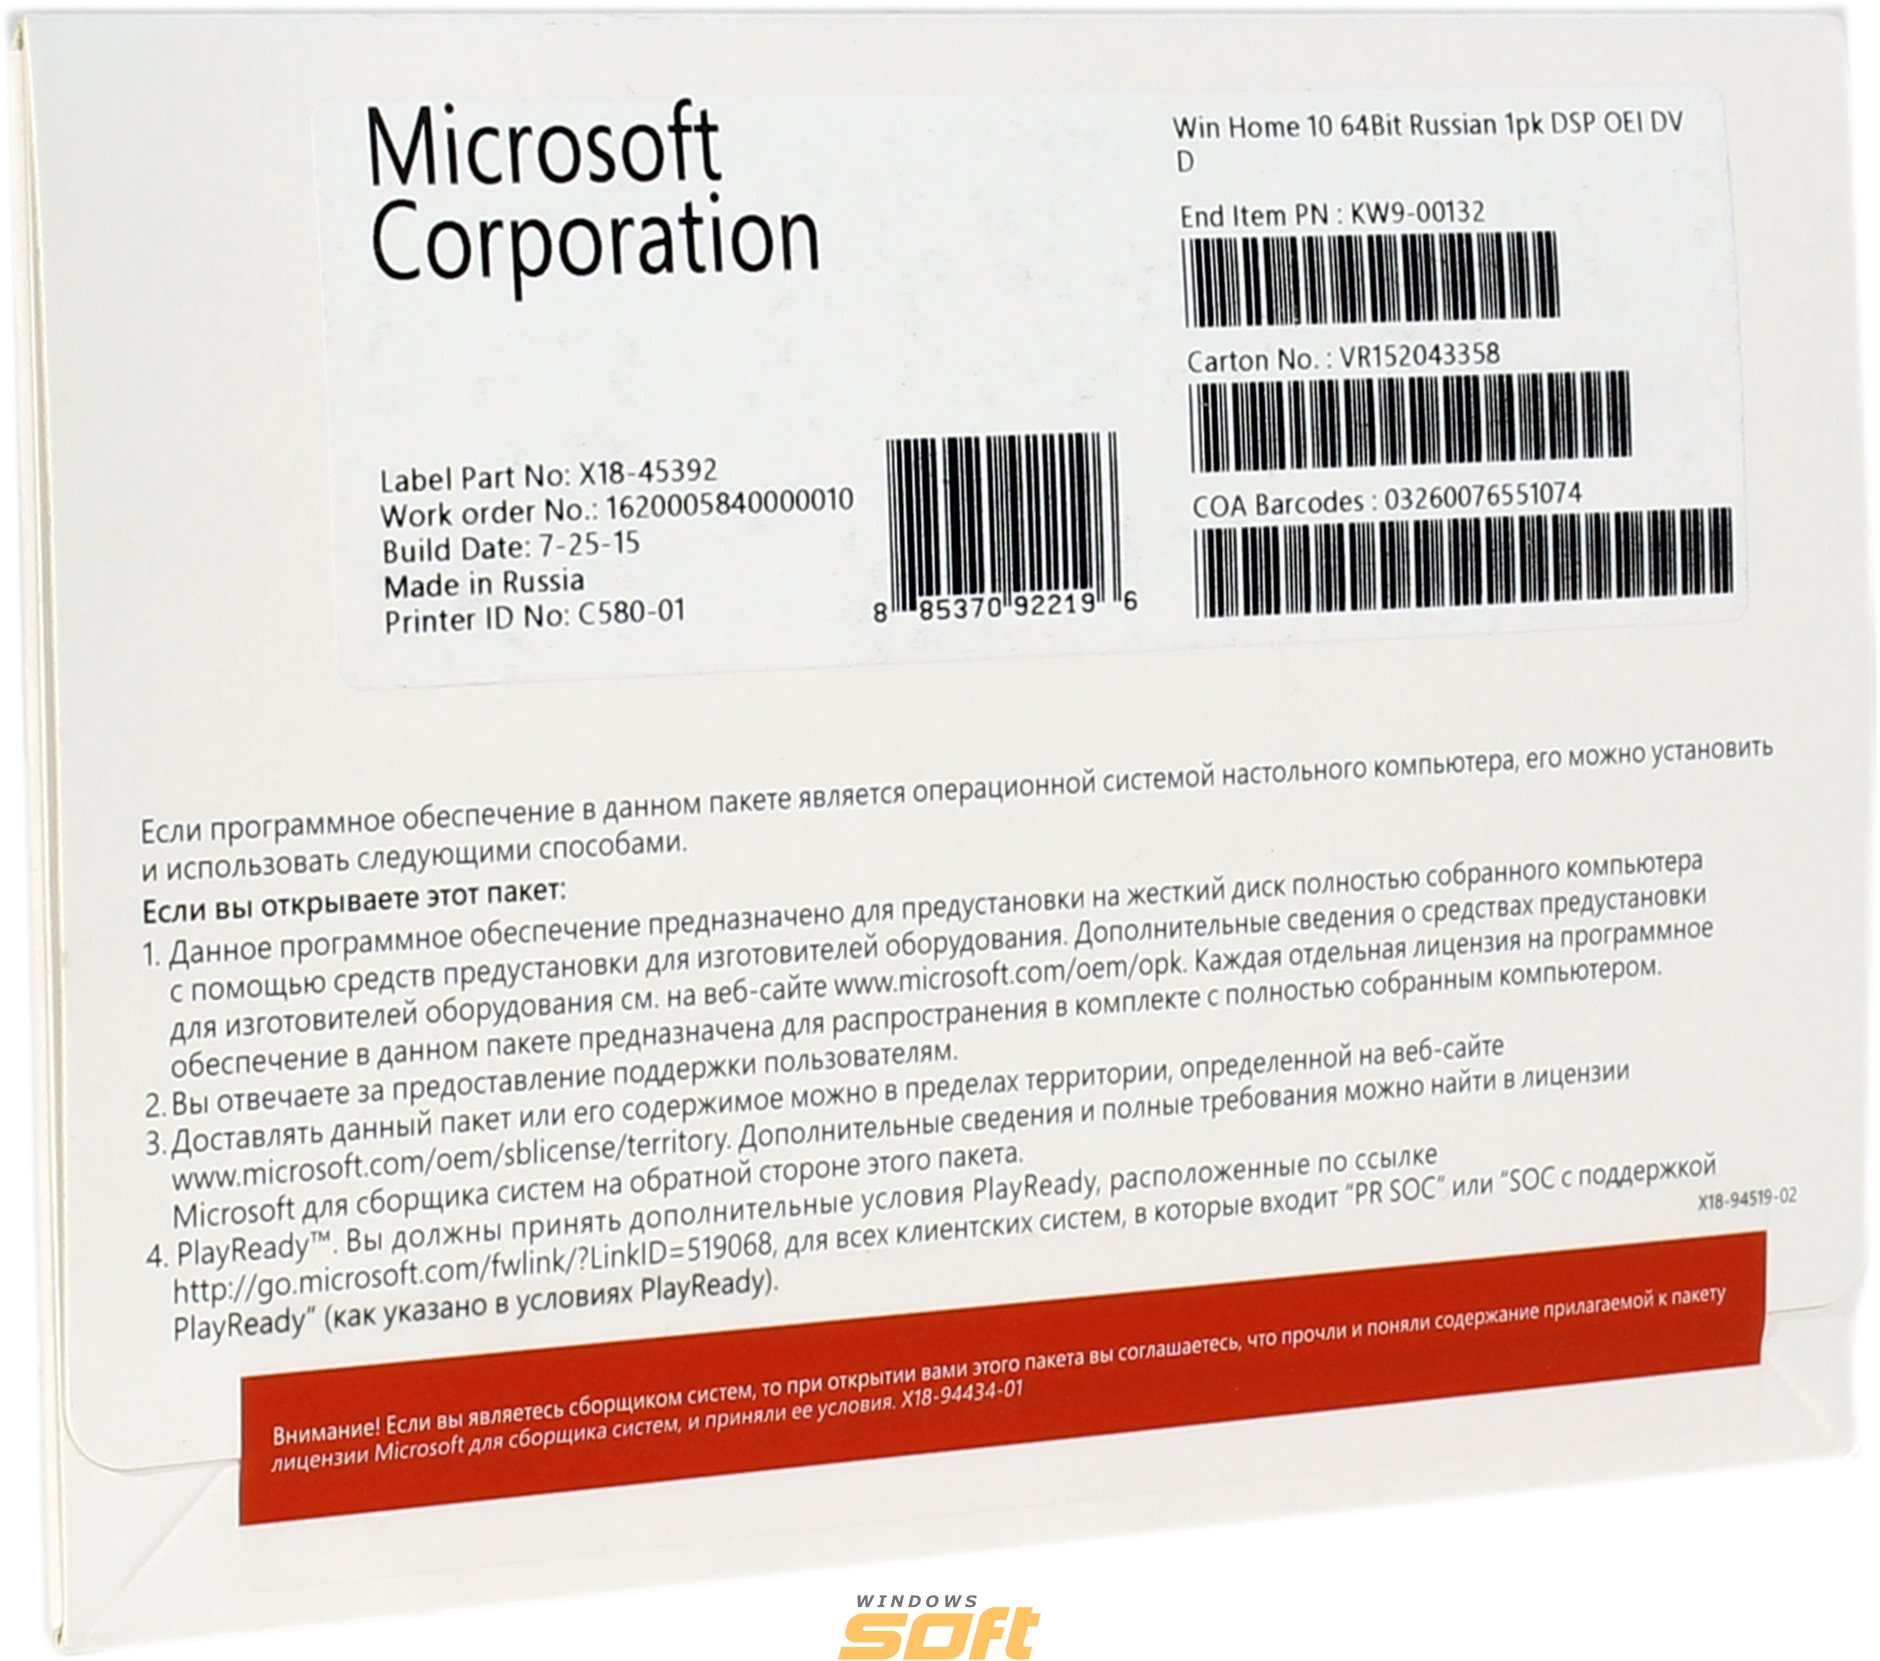 Купить Microsoft Windows 10 Home 64Bit Russian 1pk DSP OEI DVD KW9-00132 по доступной цене